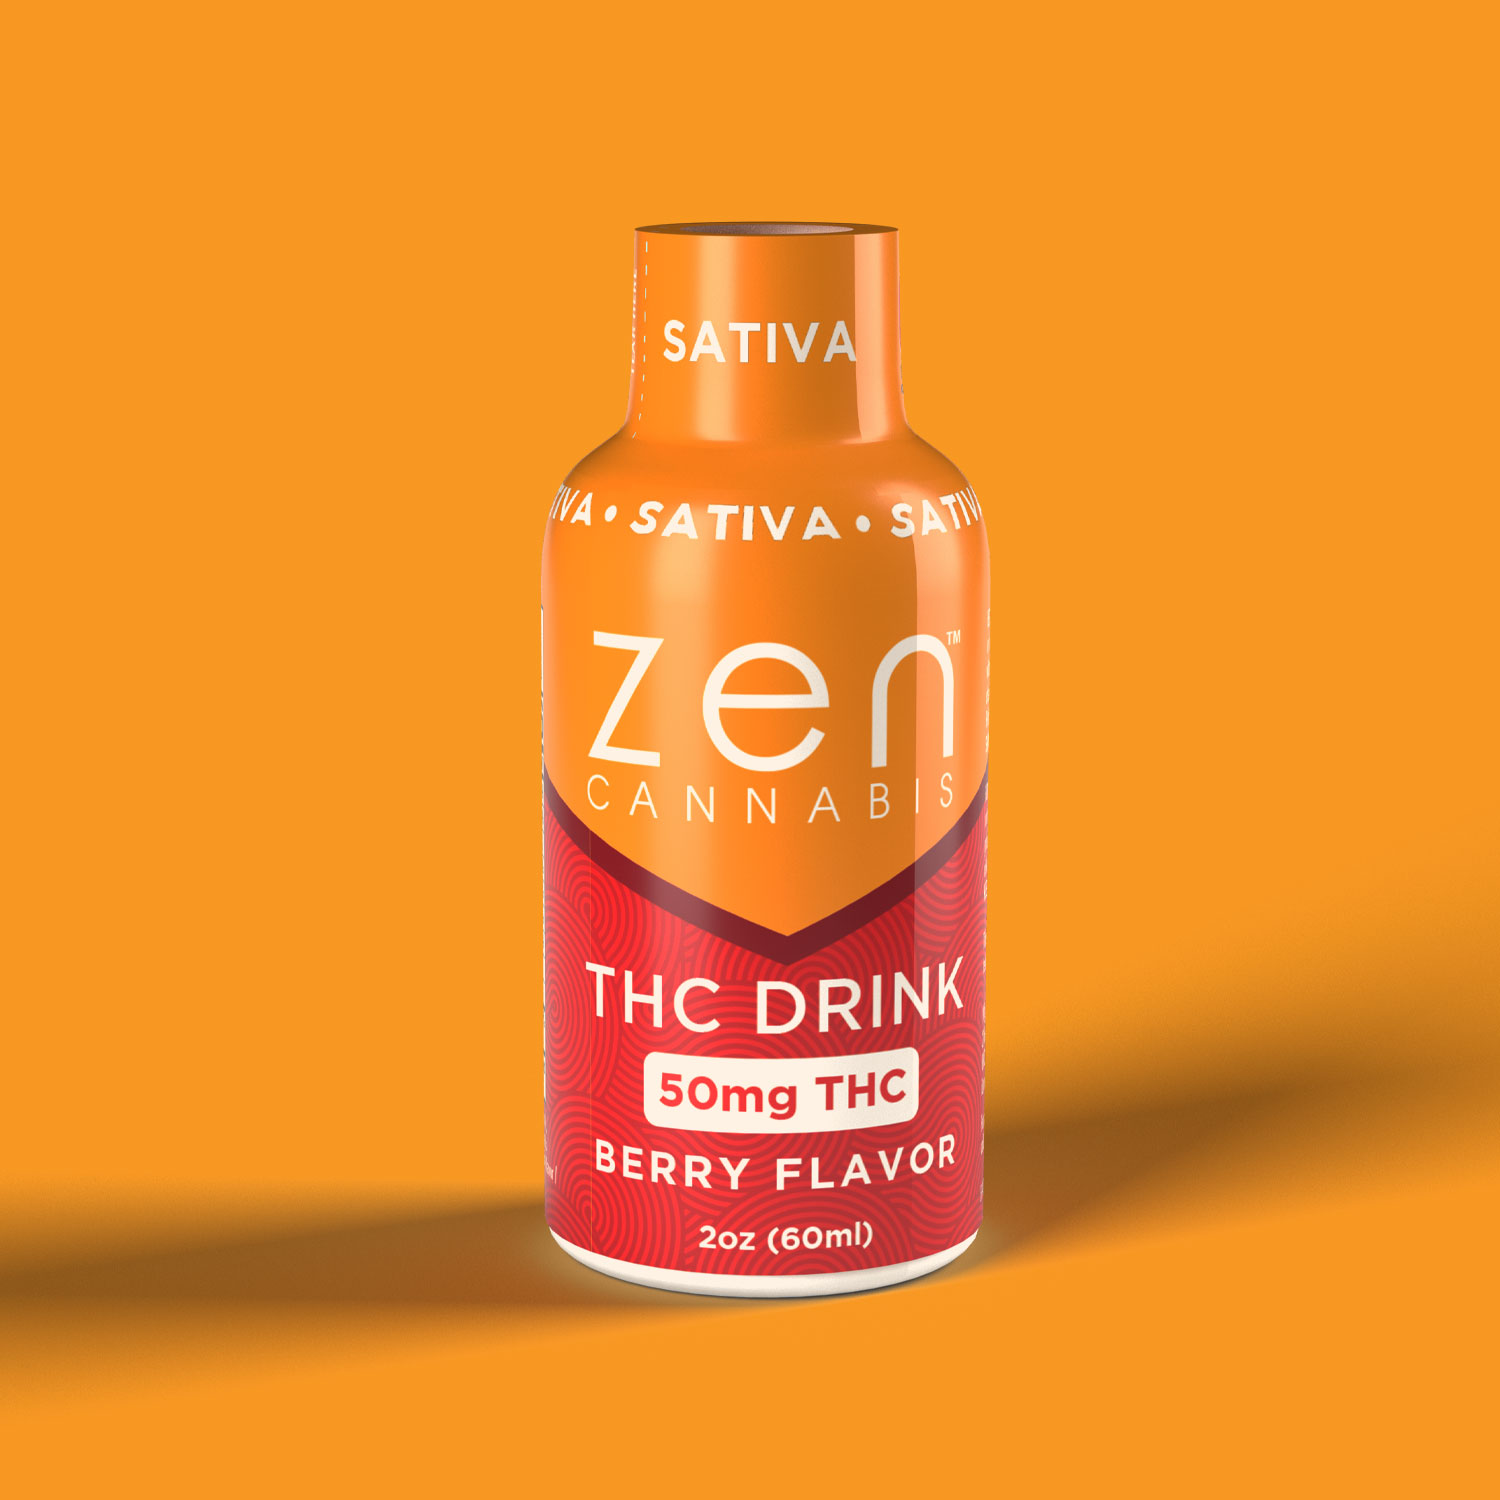 SATIVA   50mg THC A two-ounce burst of delectably sweet berry flavor to make your aches and pains melt away without the dragging you down. This sativa drink will invigorate your taste buds and keep you relaxed and pain-free without putting you to sleep. 50mg THC per bottle   2oz (60ml)